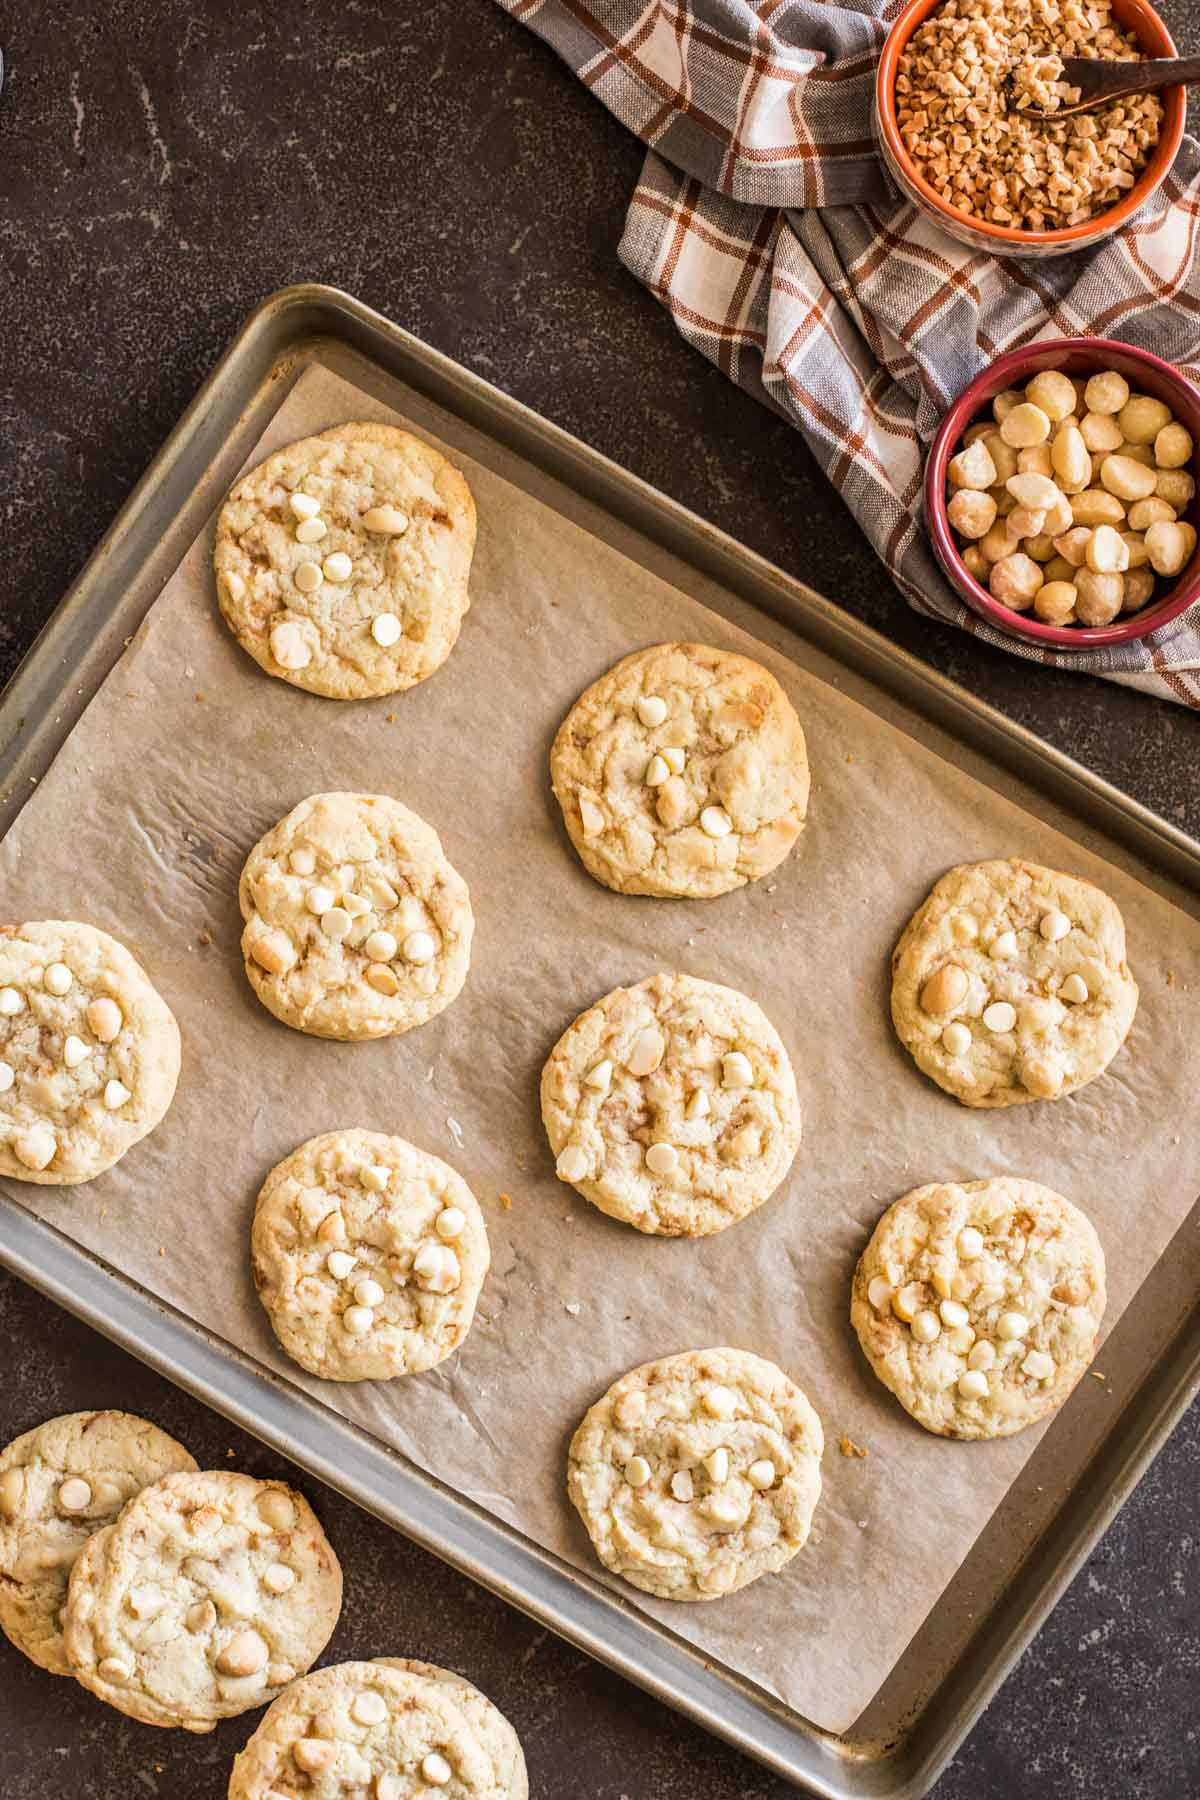 Buttery Toffee White Chocolate Chip Macadamia Nut Cookies on a parchment paper lined baking sheet, with more cookies sitting next to the pan, as well as a bowl of roasted salted macadamia nuts and a bowl of toffee bits.